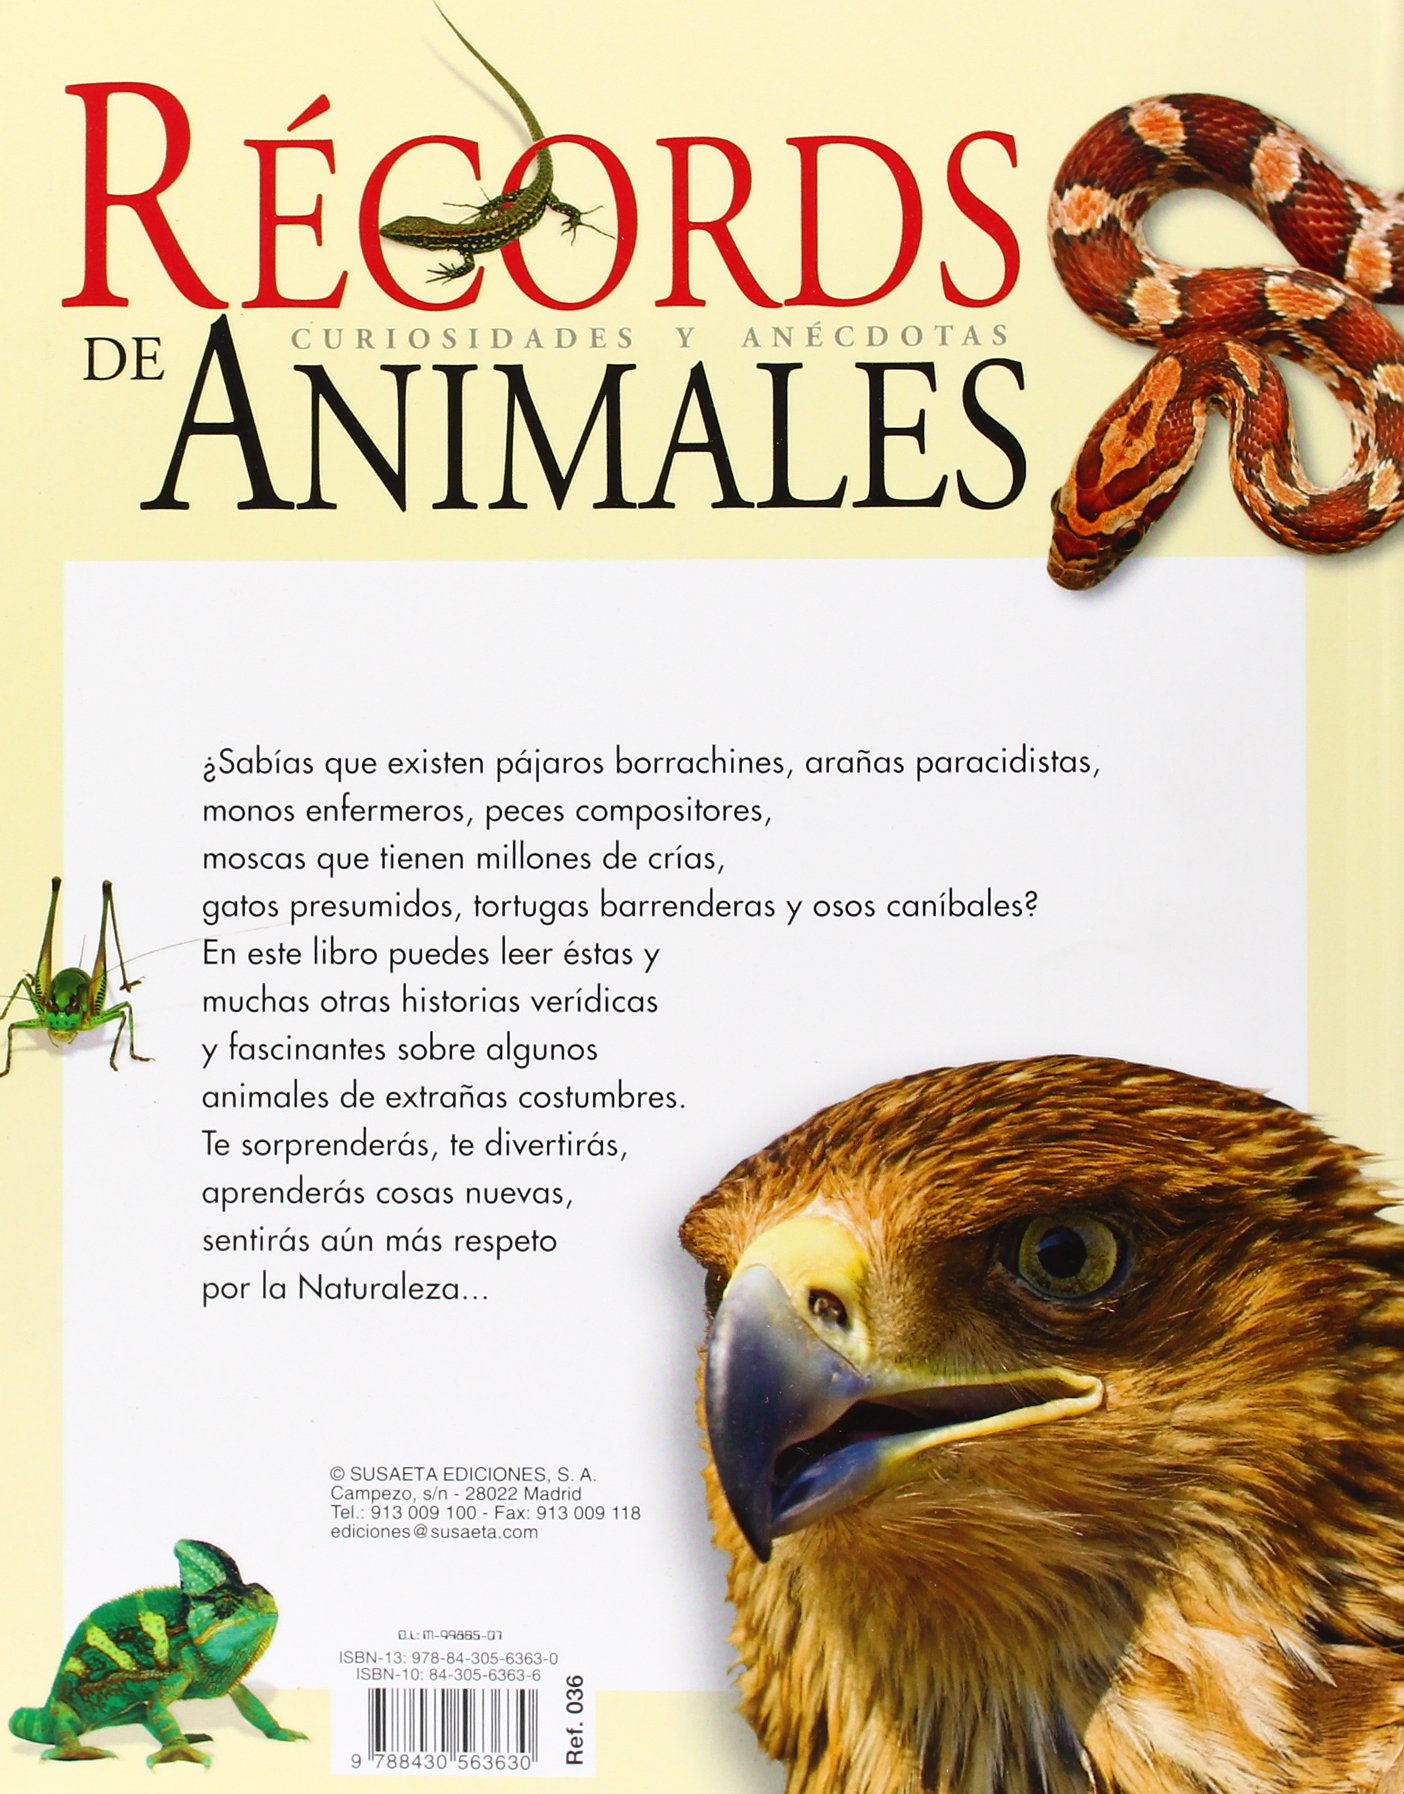 Amazon.com: Récords de animales: Curiosidades y anécdotas (Spanish Edition) (9788430563630): Inc. Susaeta Publishing: Books